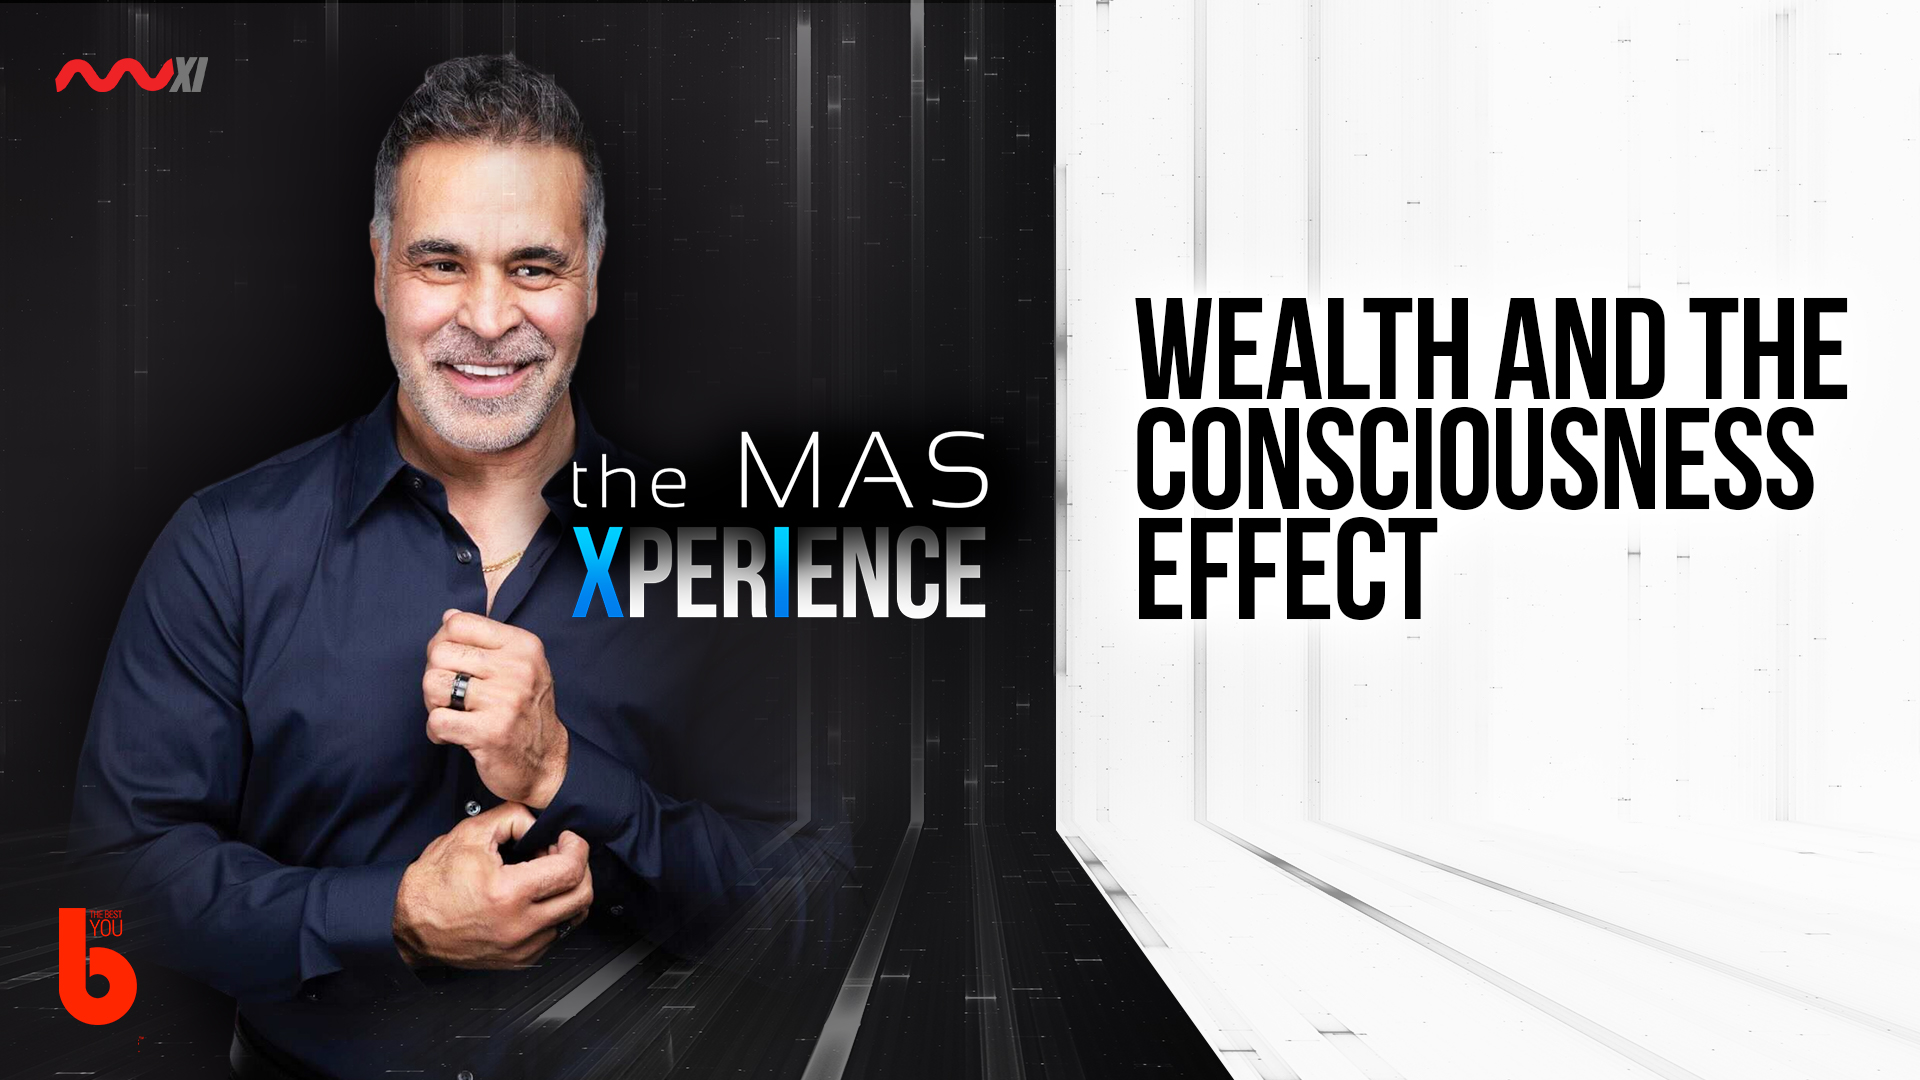 Wealth and the Consciousness Effect